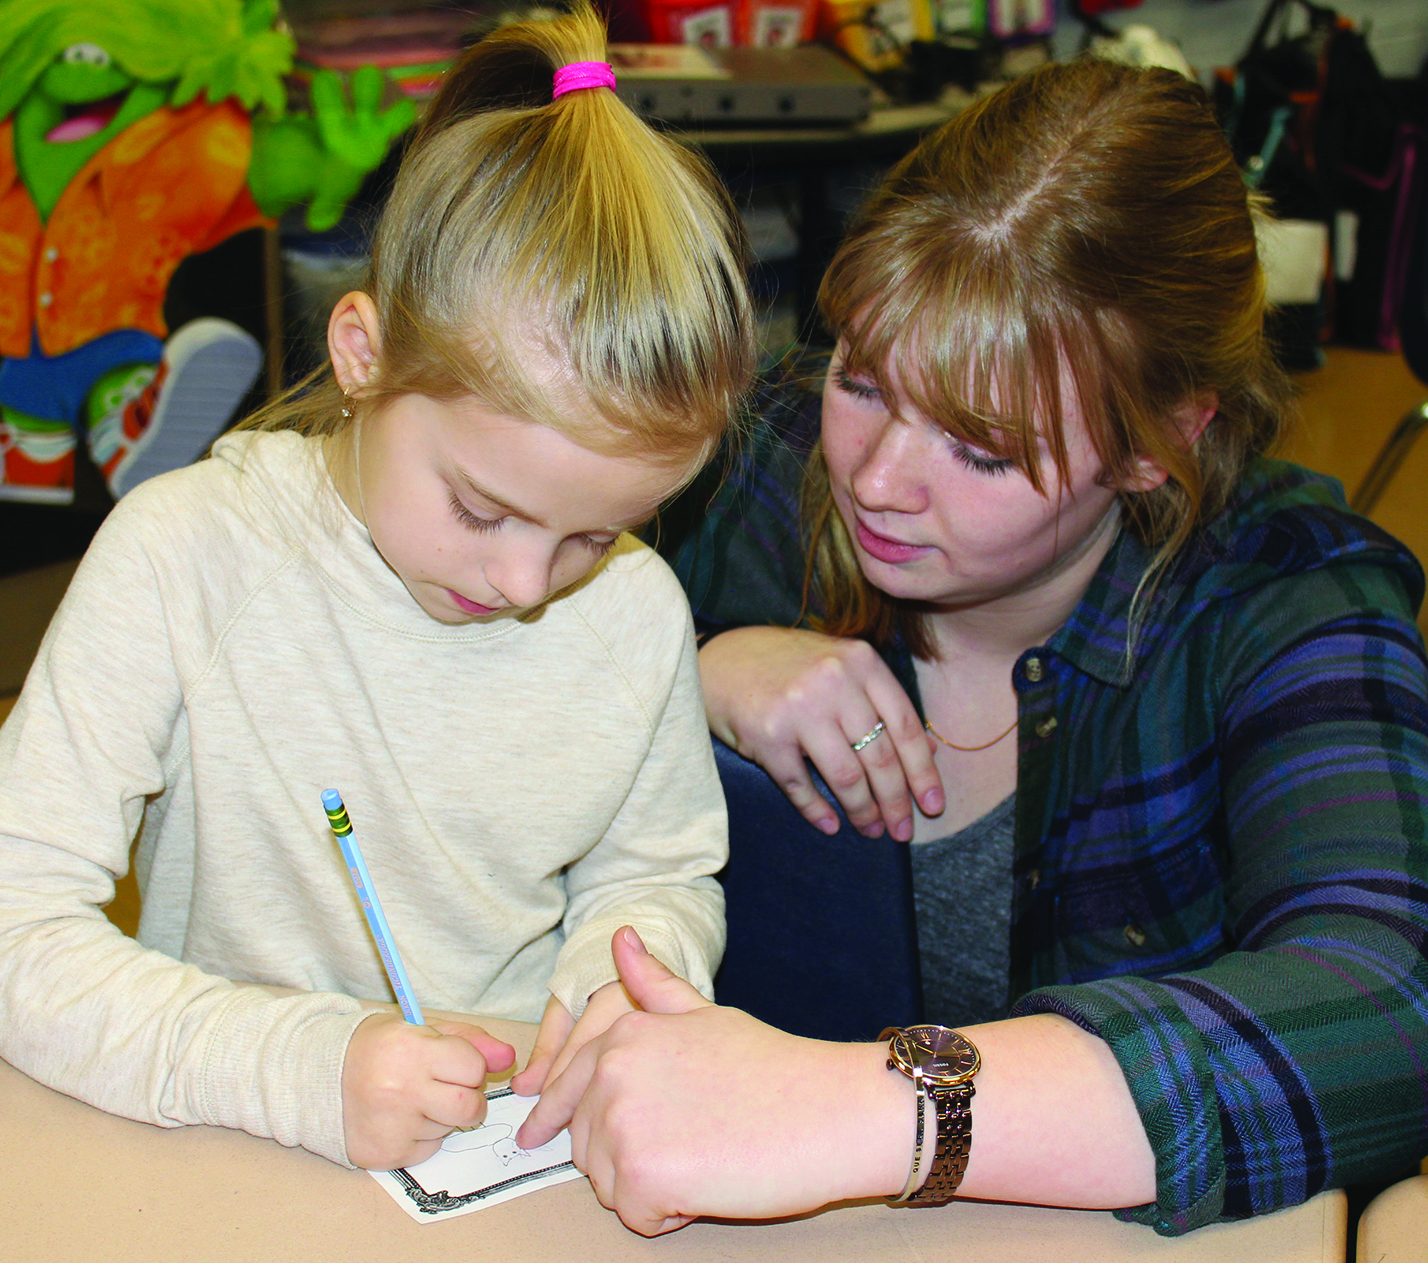 HHS senior Elly Ciesinski guides Hinckley 2nd grader Sophia Schidowka as she creates her own mini artwork.